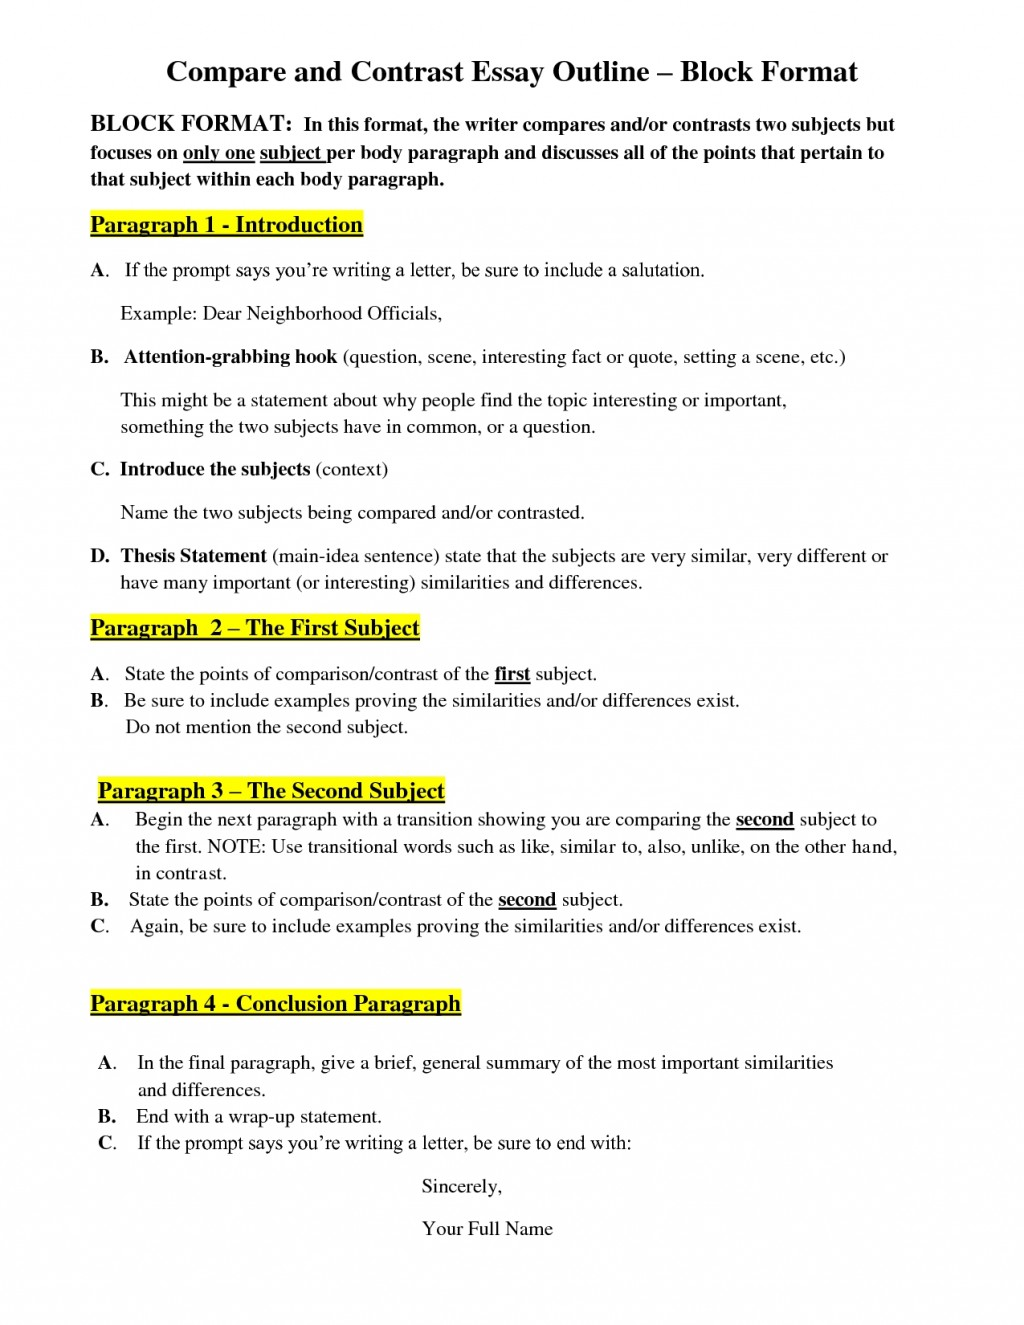 005 Comparison And Contrastsay Examples Point By Template Compare Outline Example Maxresdefault Creating Project Plan For Your Youtube How To An With Good Cover Letter Samples Imposing Contrast Essay Point-by-point Large